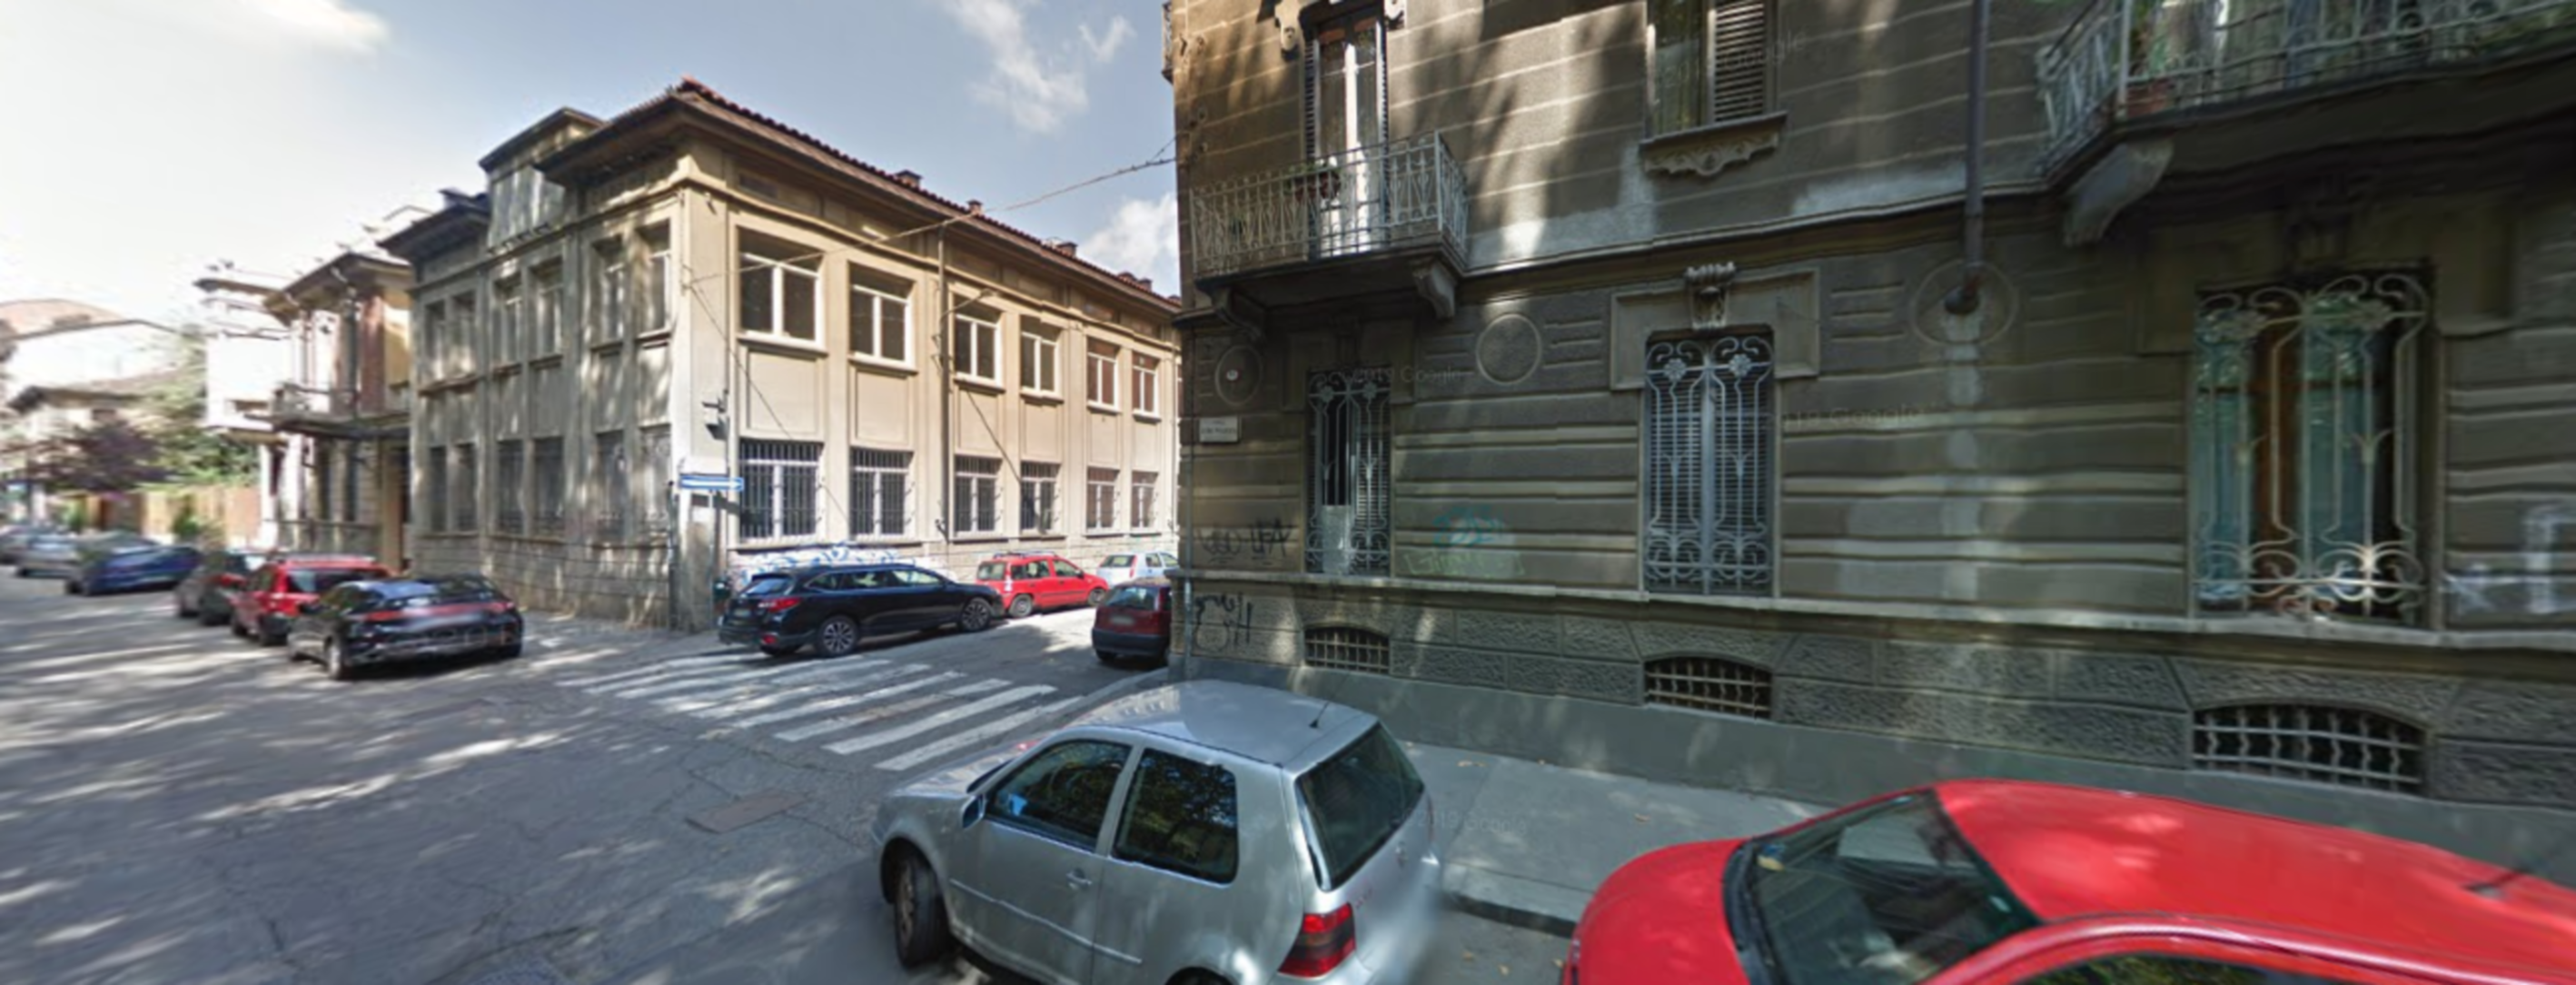 A car parked in front of a building at B&B Turin.